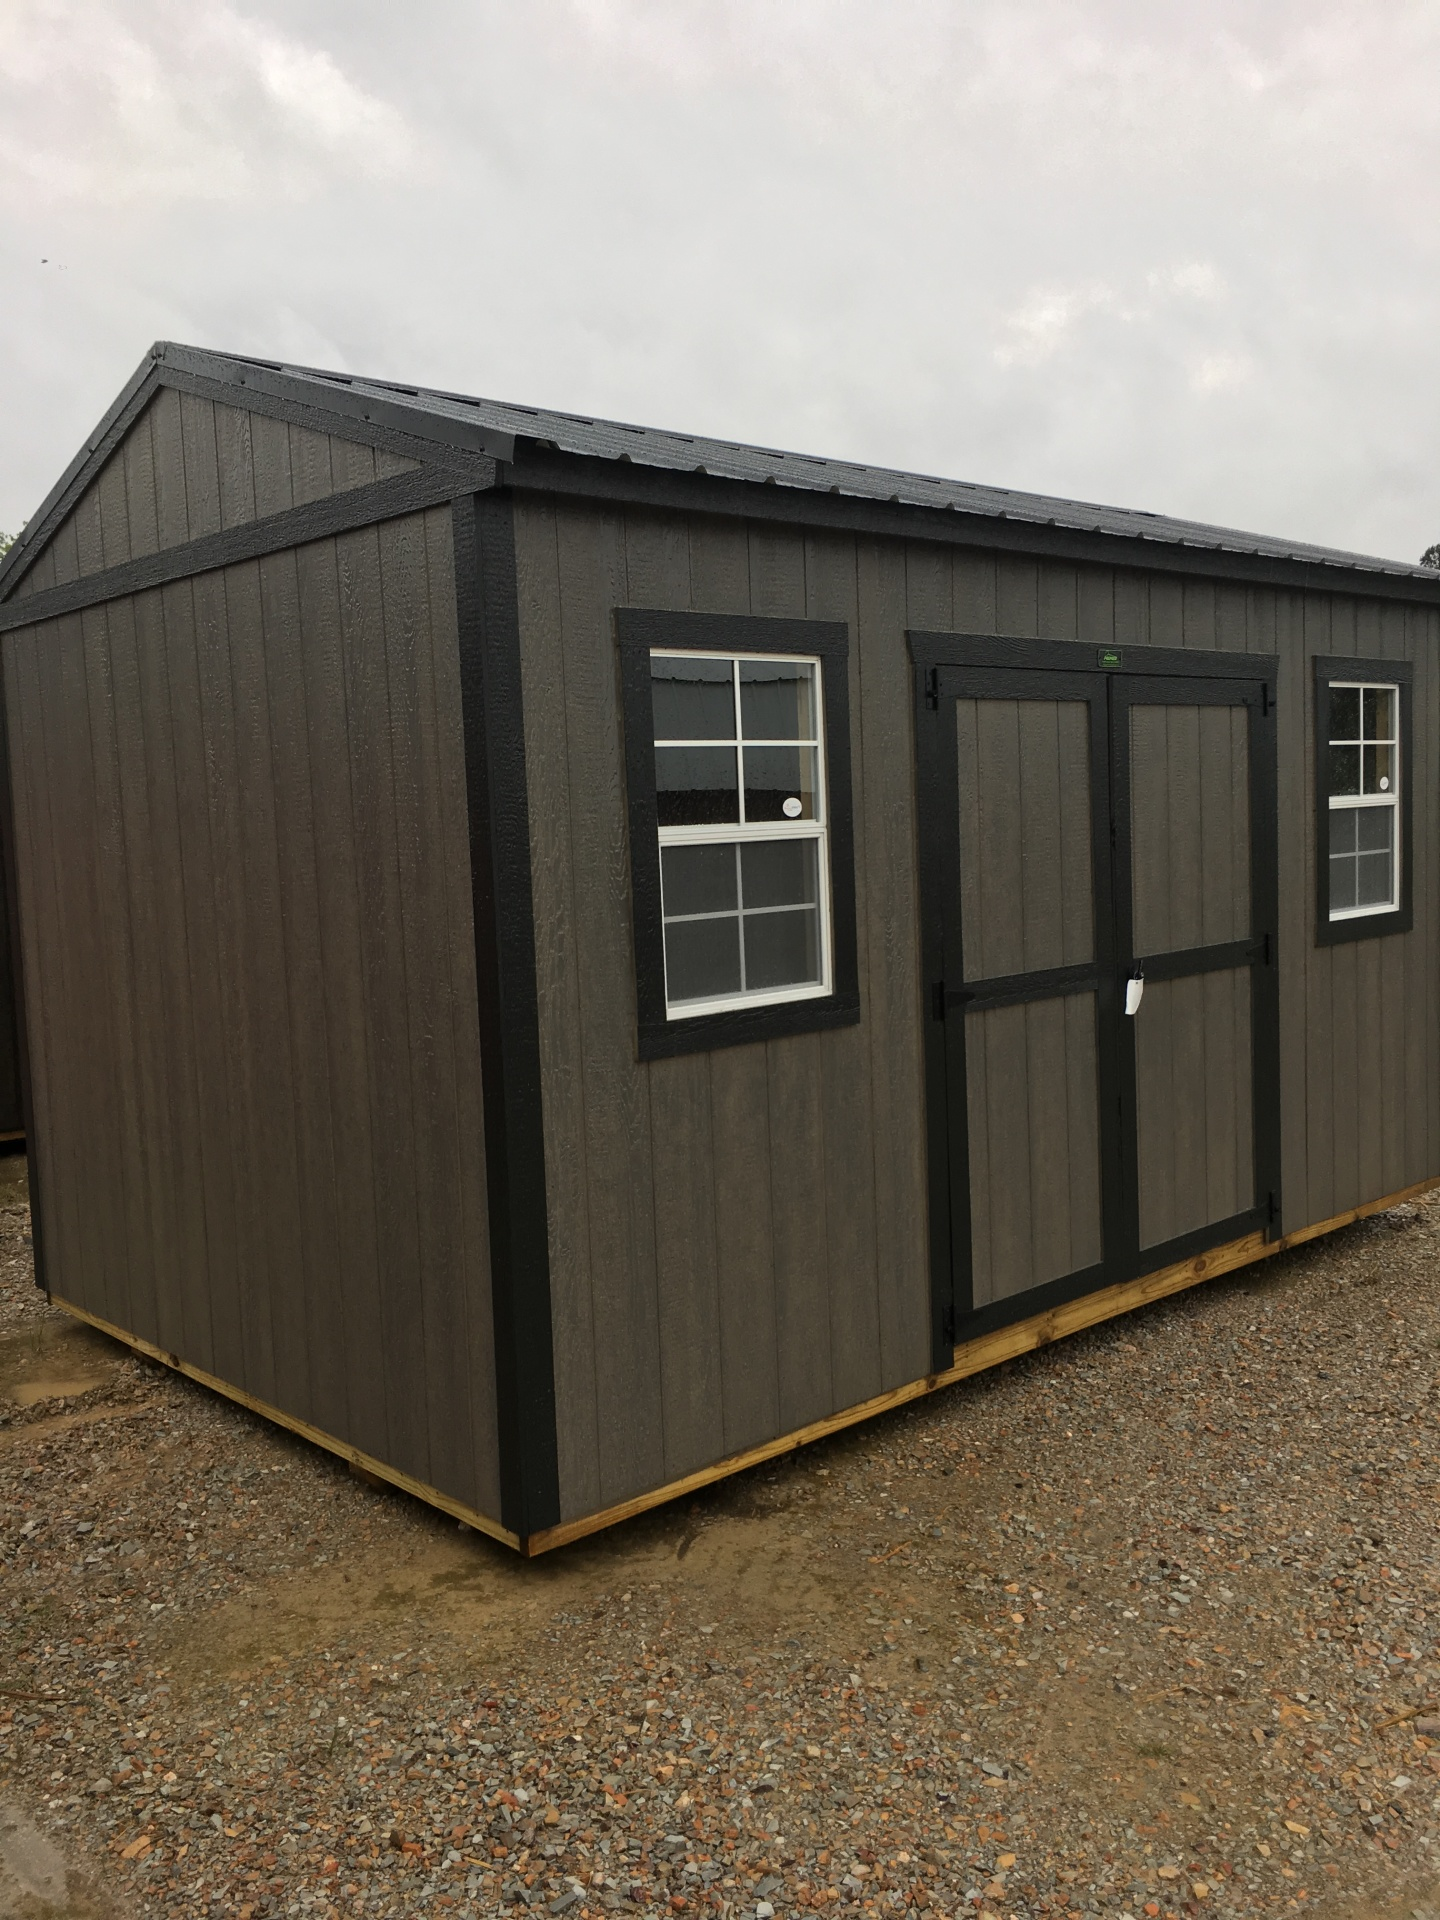 Shop, Office, Utility Shed, Play House